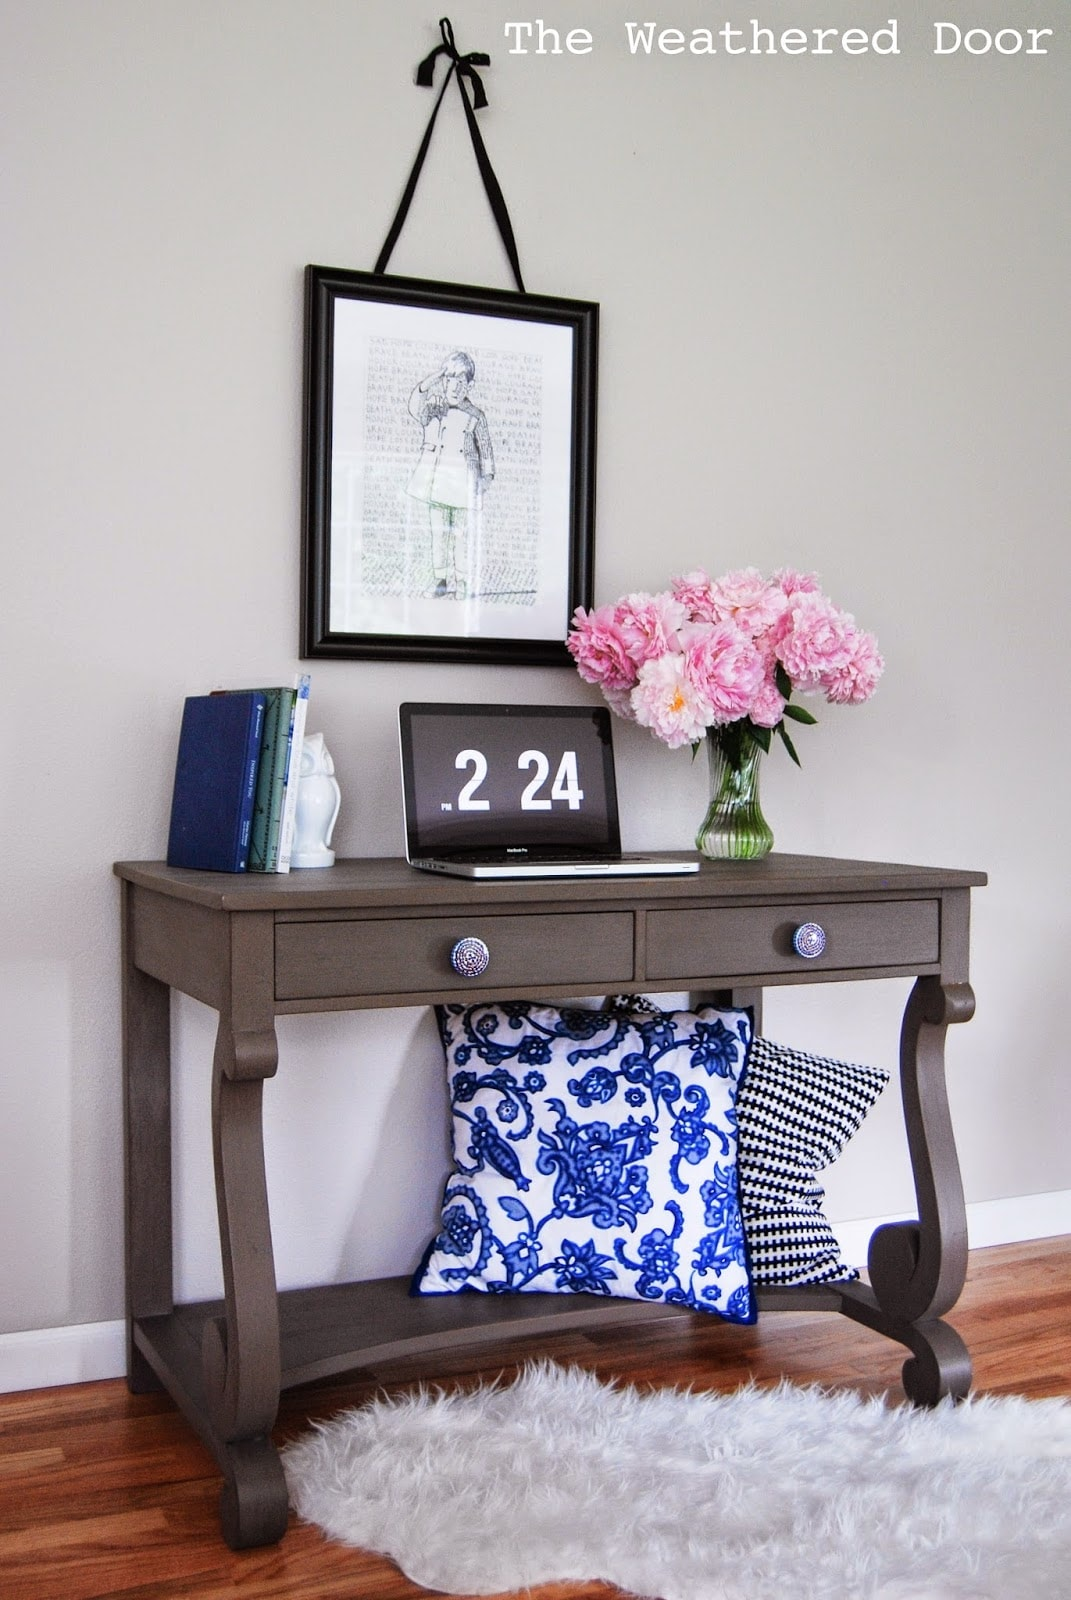 Wooden desk with laptop and flowers on top